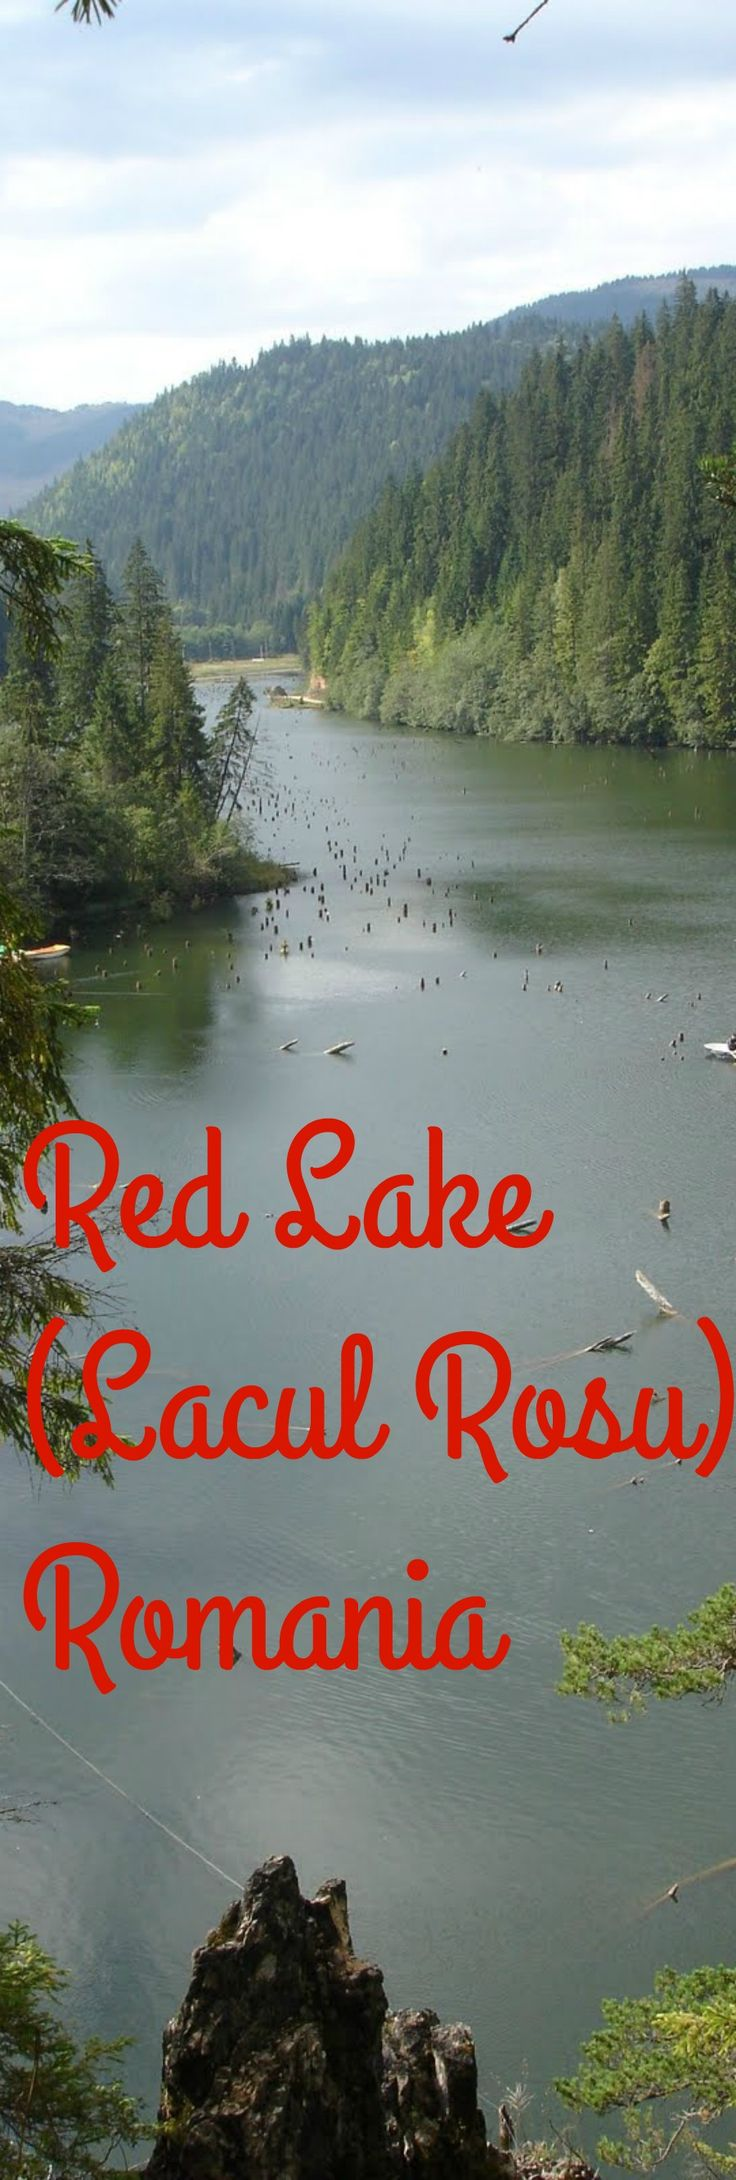 Red Lake (Lacul Rosu) Romania – Awesome Natural Place